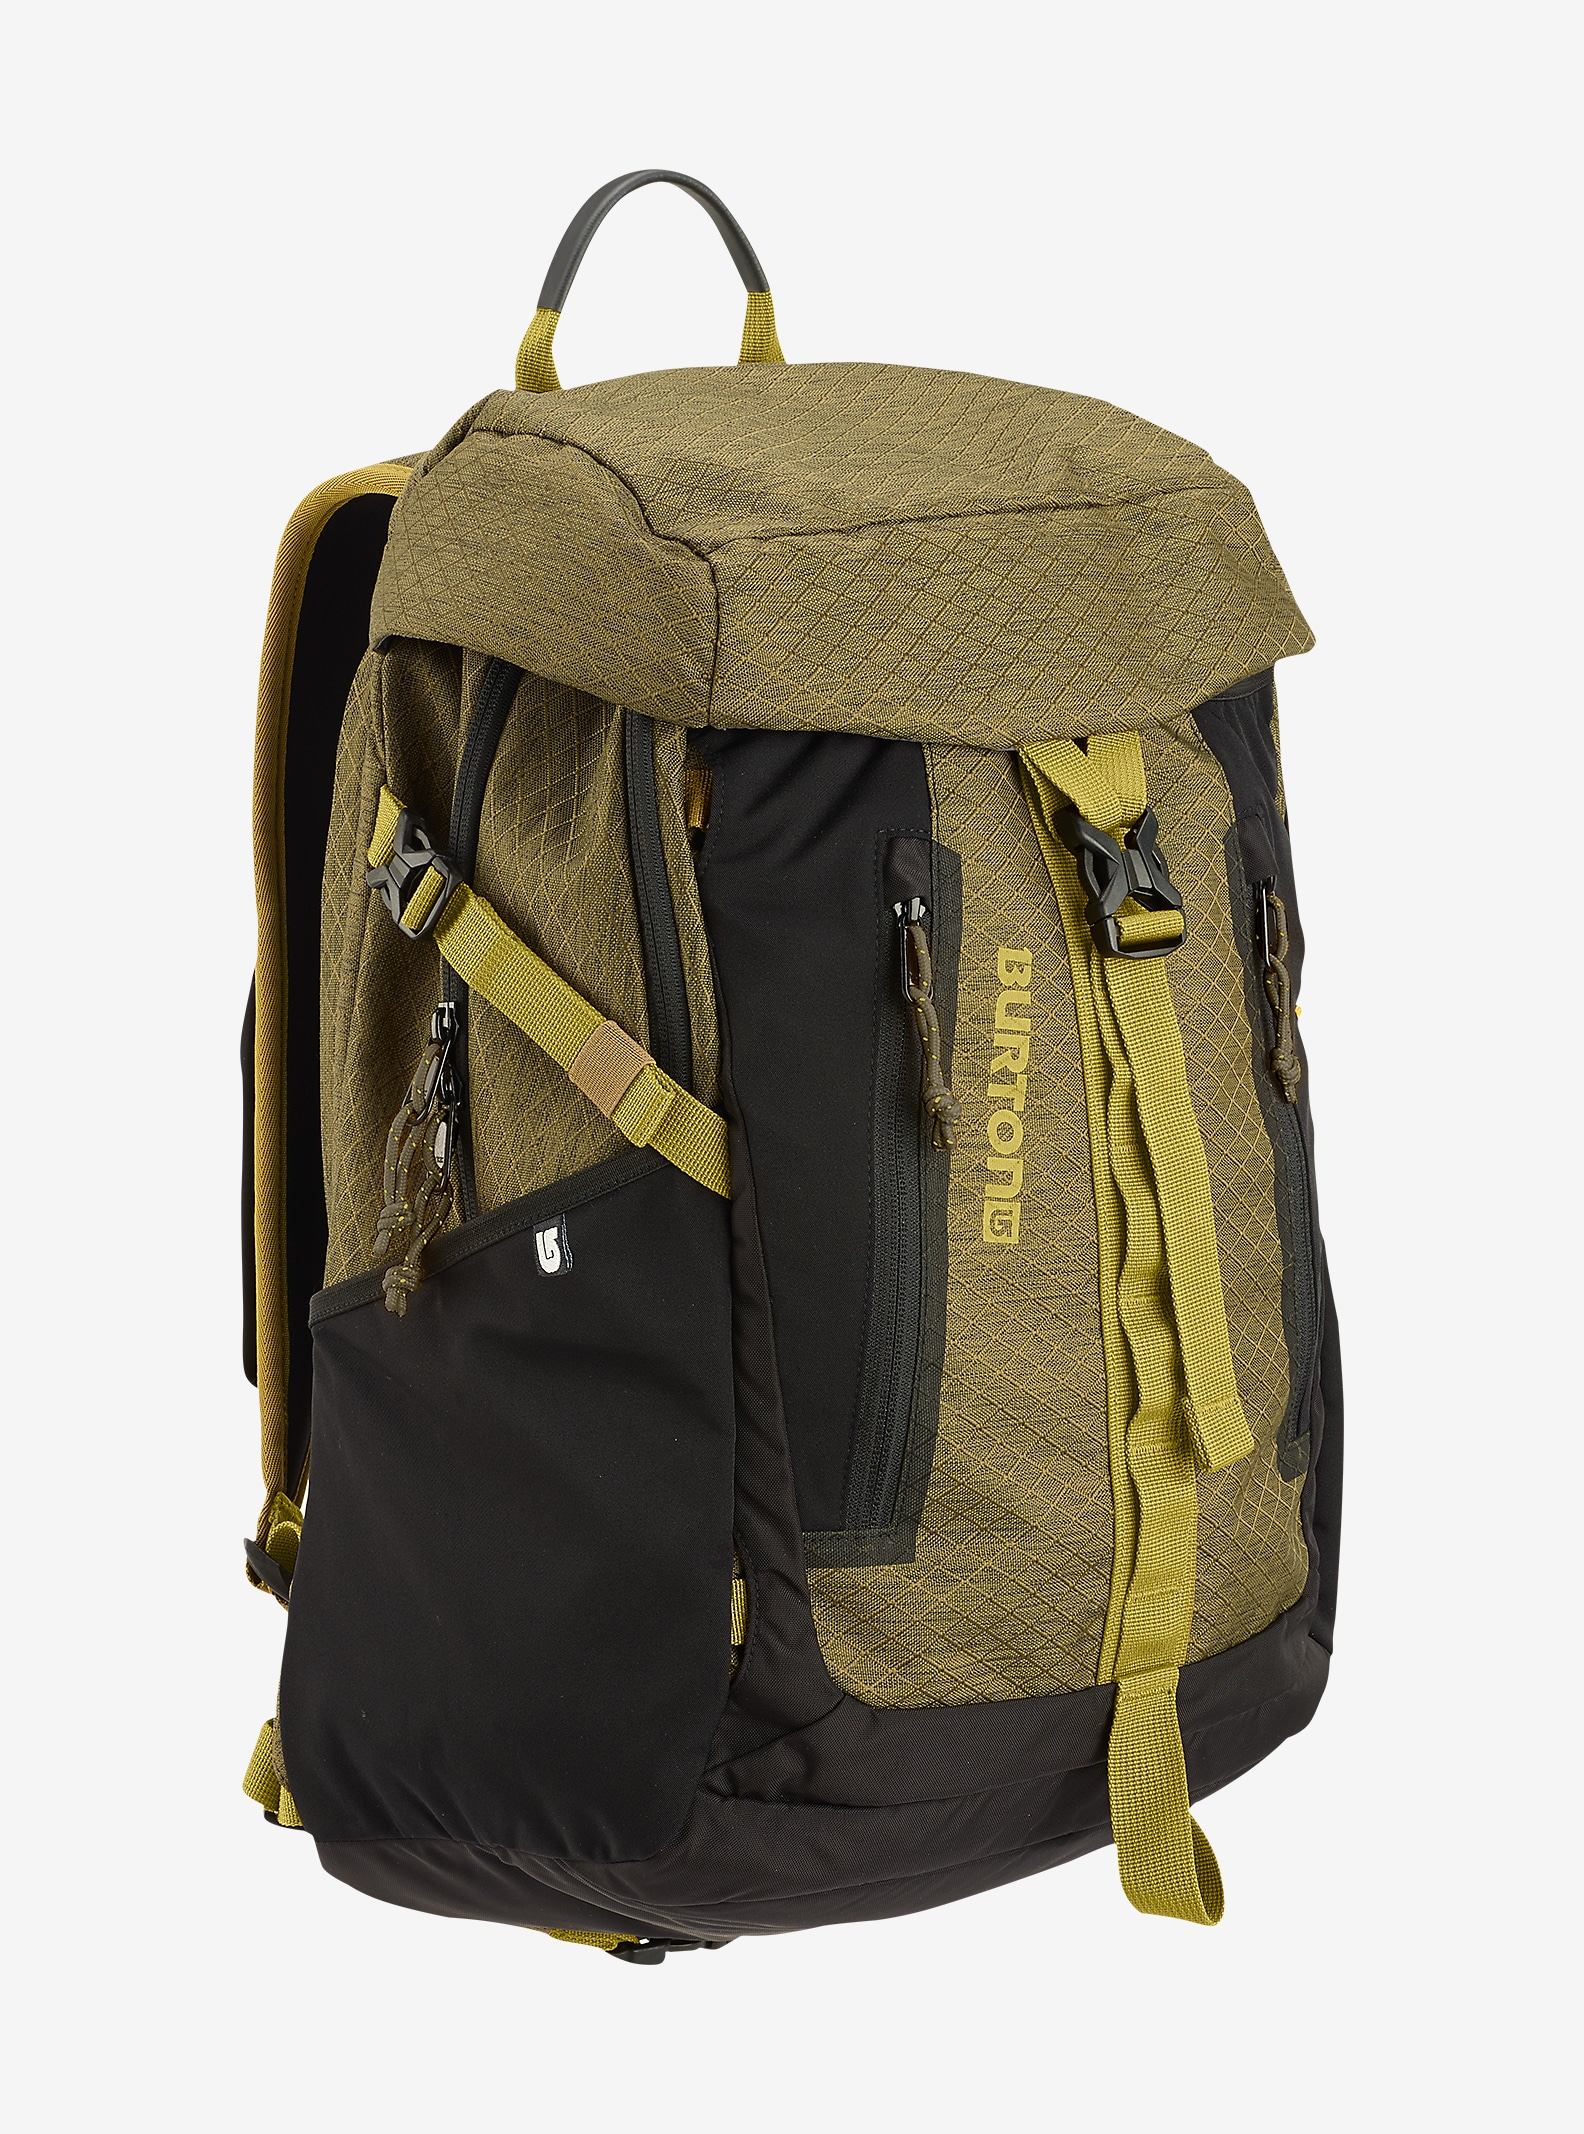 Burton - Sac à dos 31 L Day Hiker Pinnacle affichage en Jungle Heather Diamond Ripstop